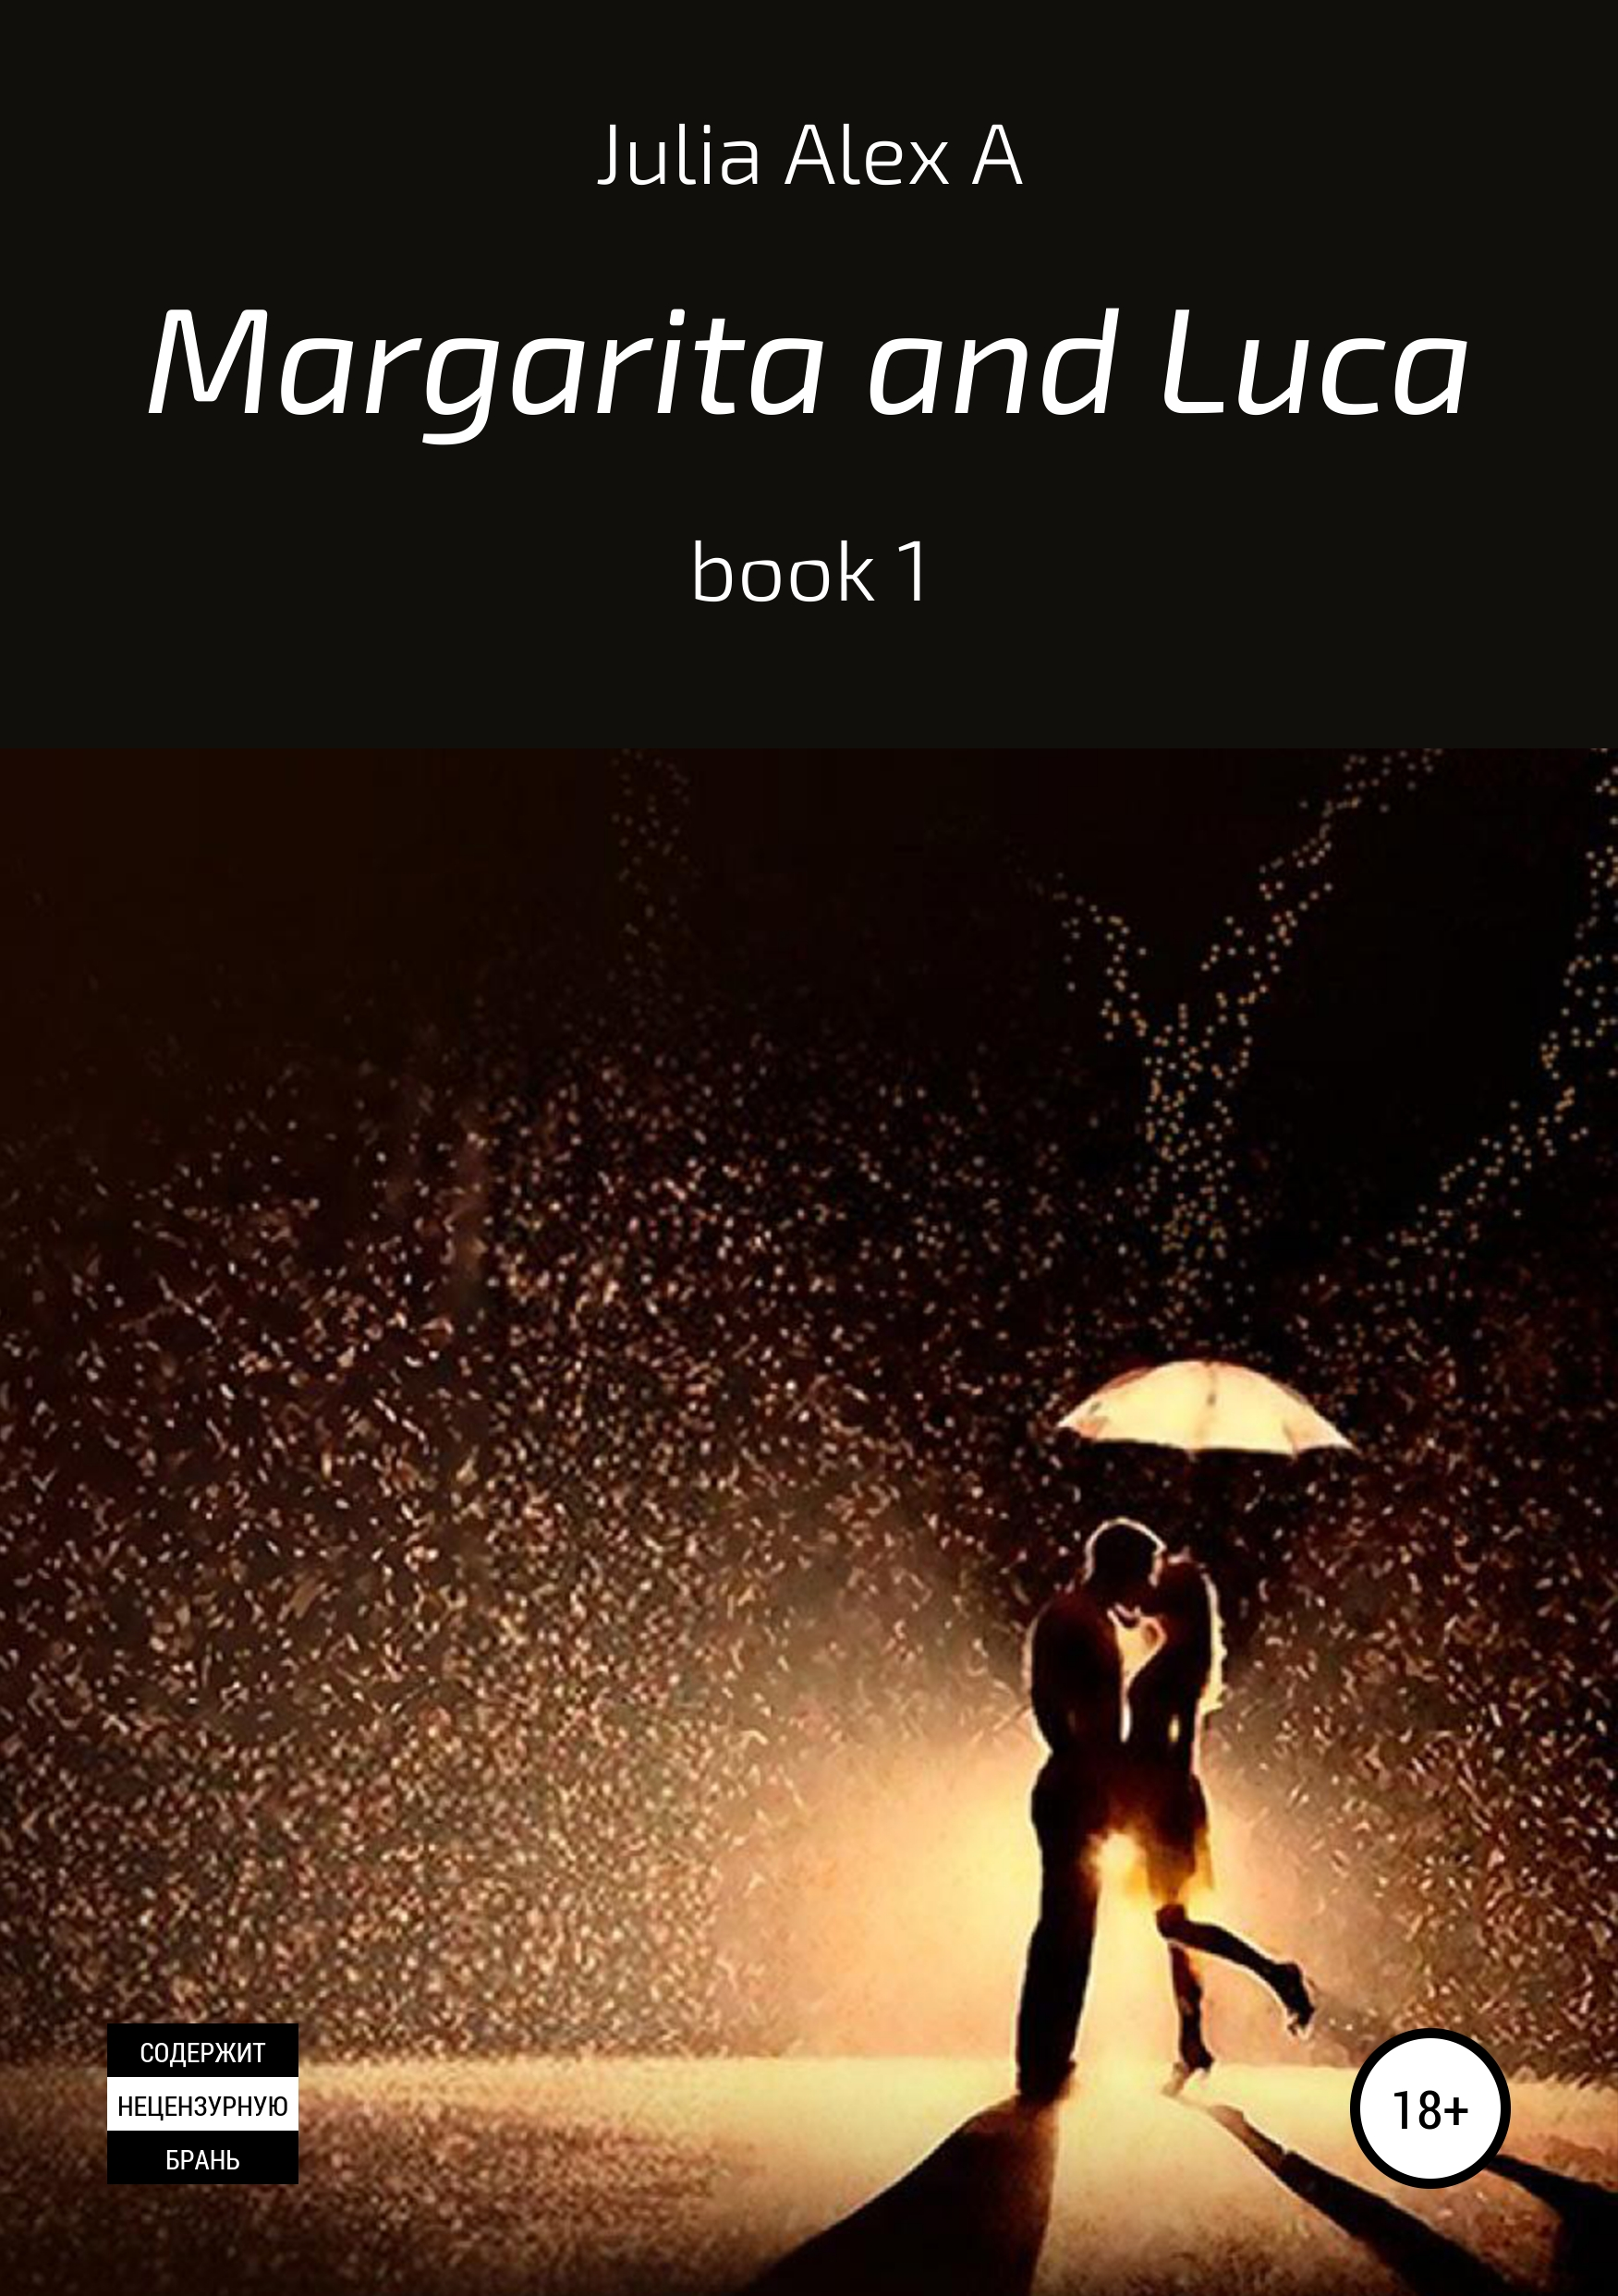 Julia Alex A. Margarita and Luca, book 1 jd mcpherson jd mcpherson let the good times roll